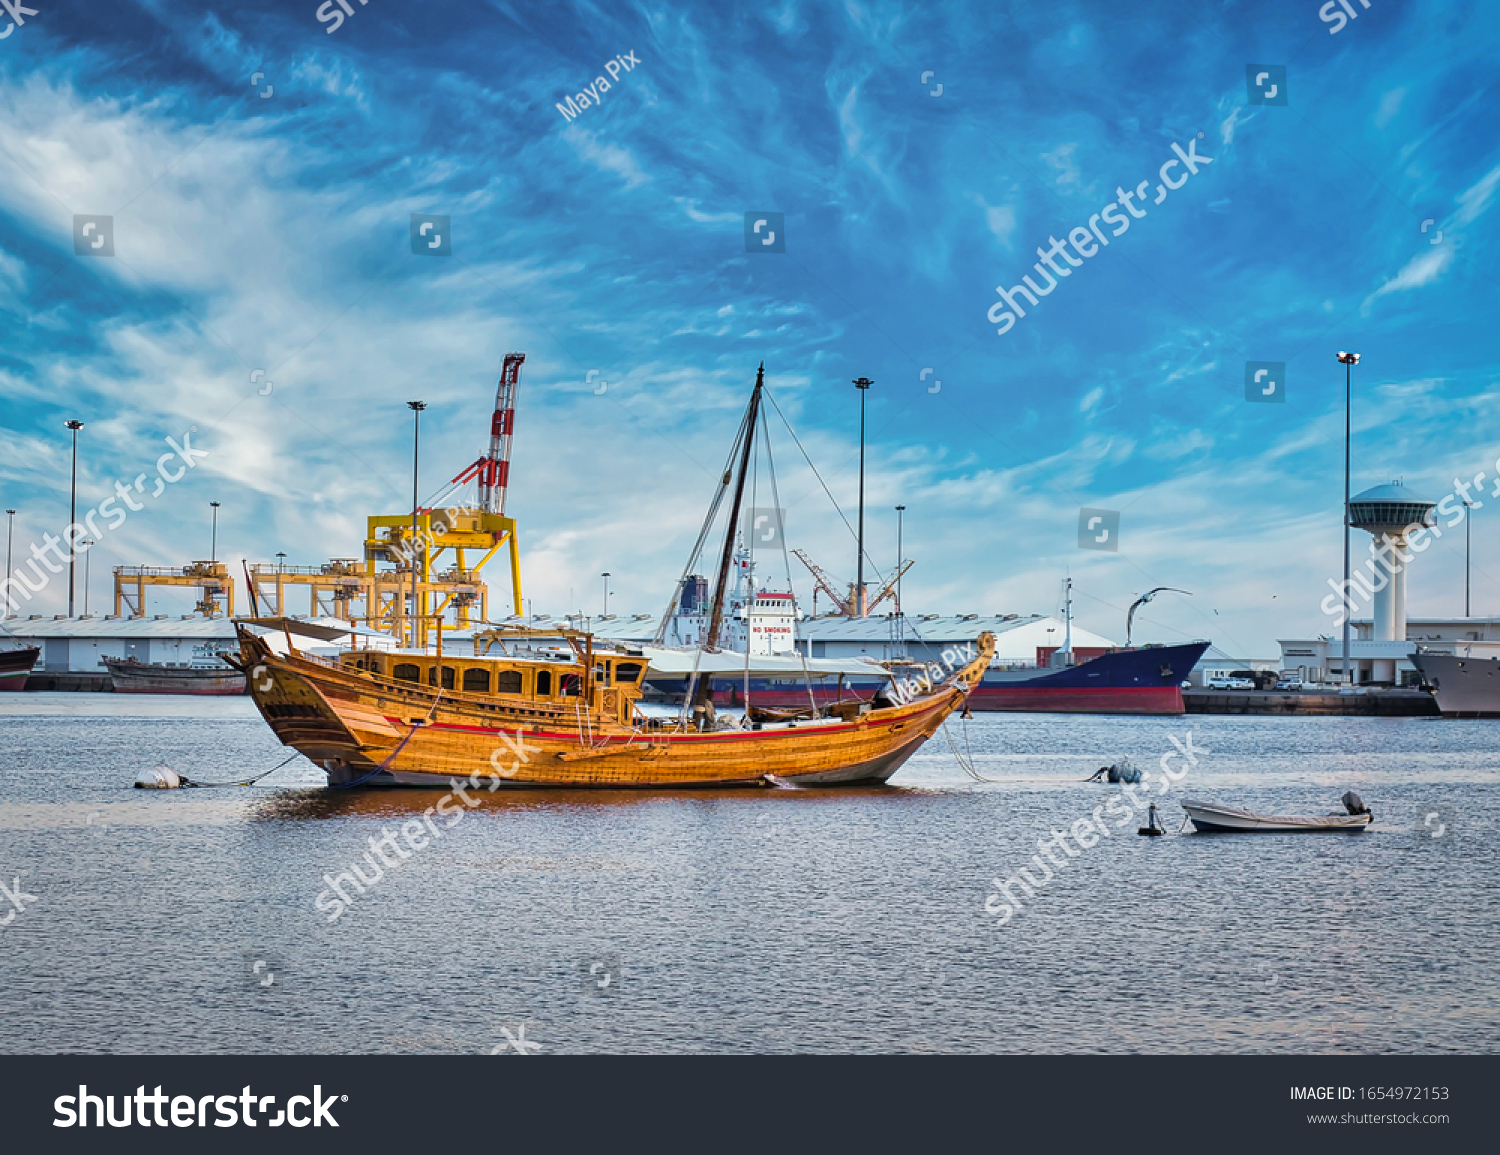 Traditional Omani Dhow anchored at the port along with the modern ships. From Muscat, Oman.